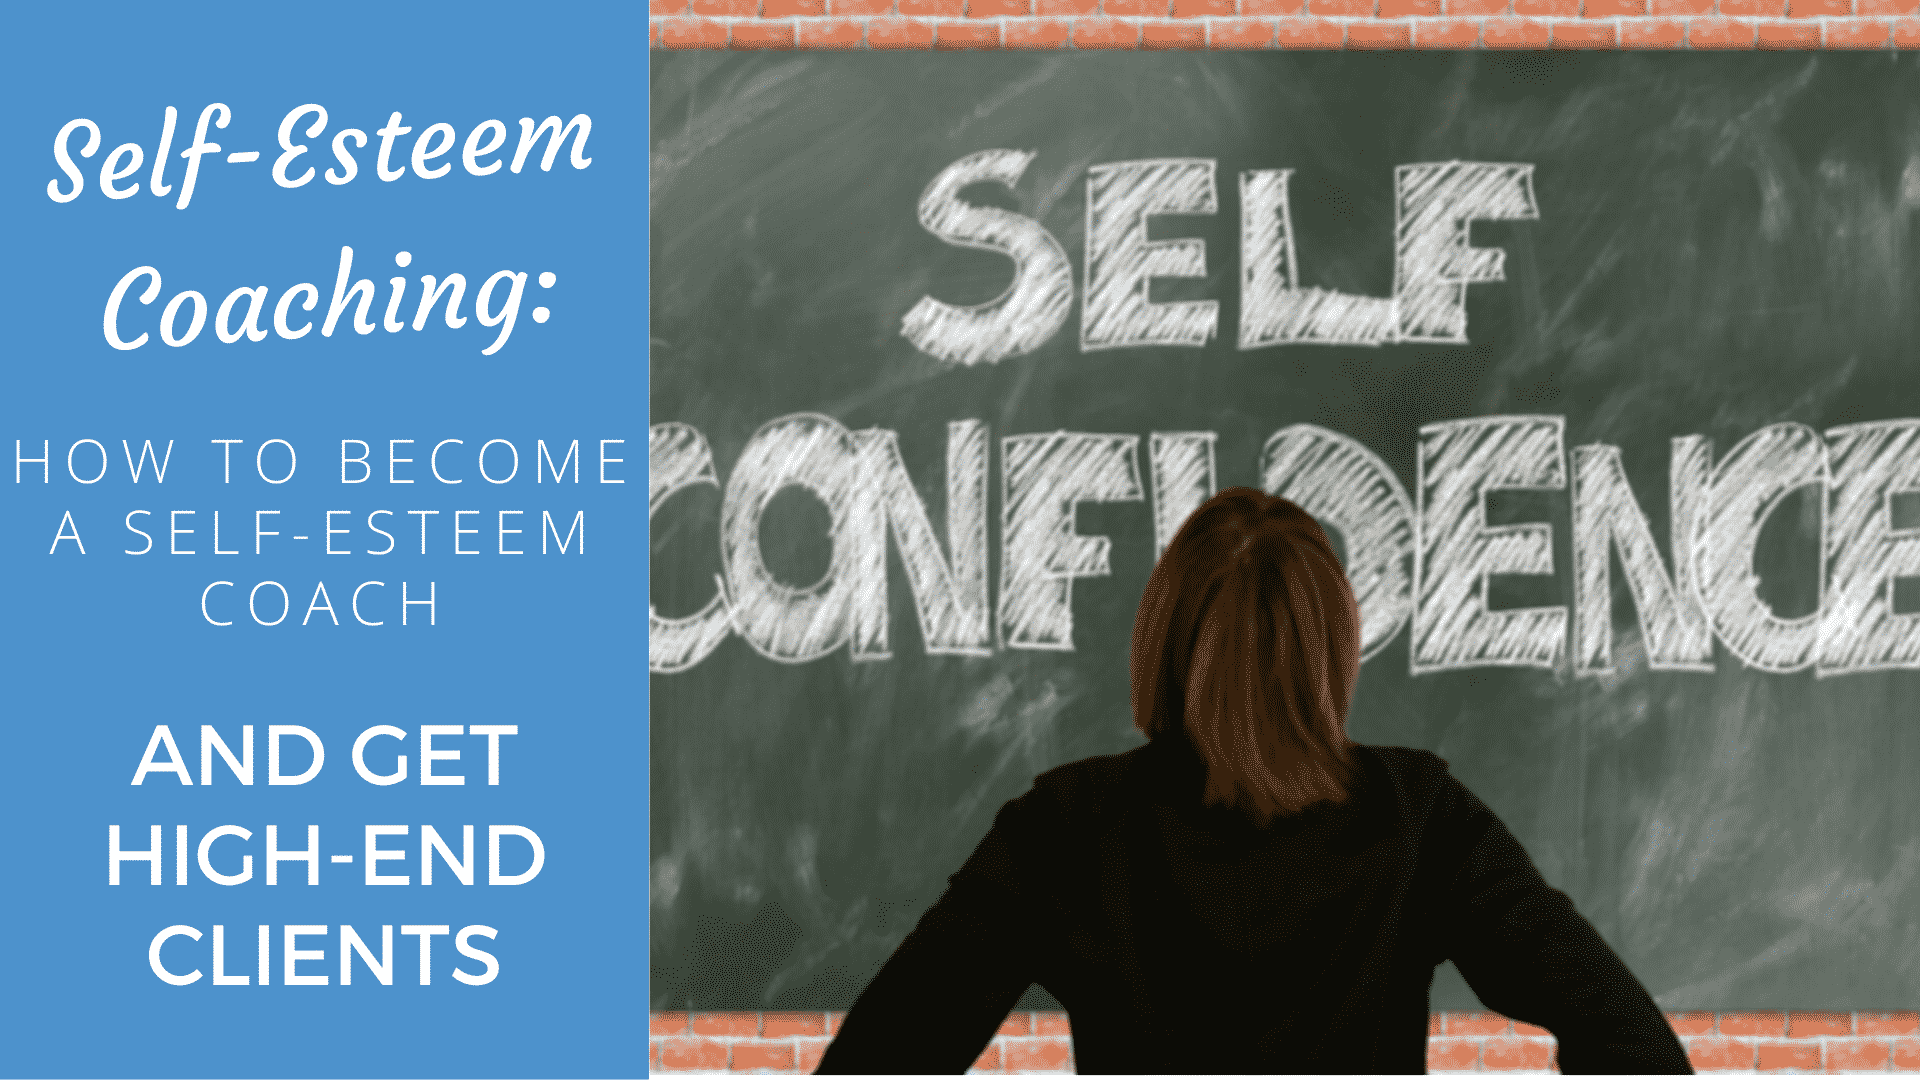 Self-Esteem Coaching: How to Become a Self-Esteem Coach and Get High-End Clients